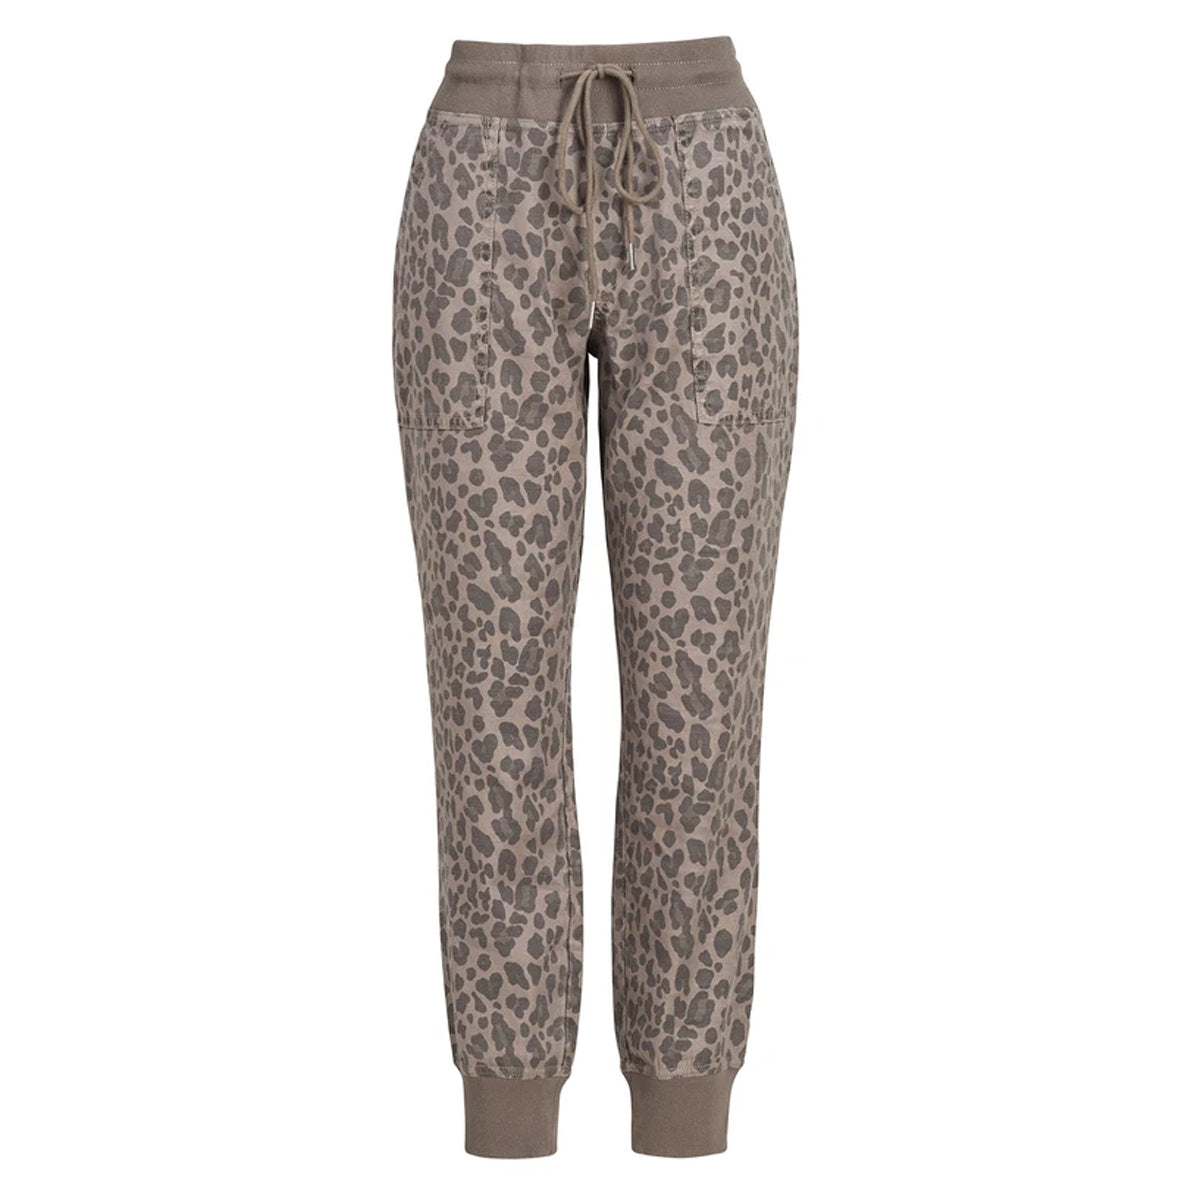 Level99 Women's Gabrielle Wildcat Jogger Pants - Wild Cat Camo